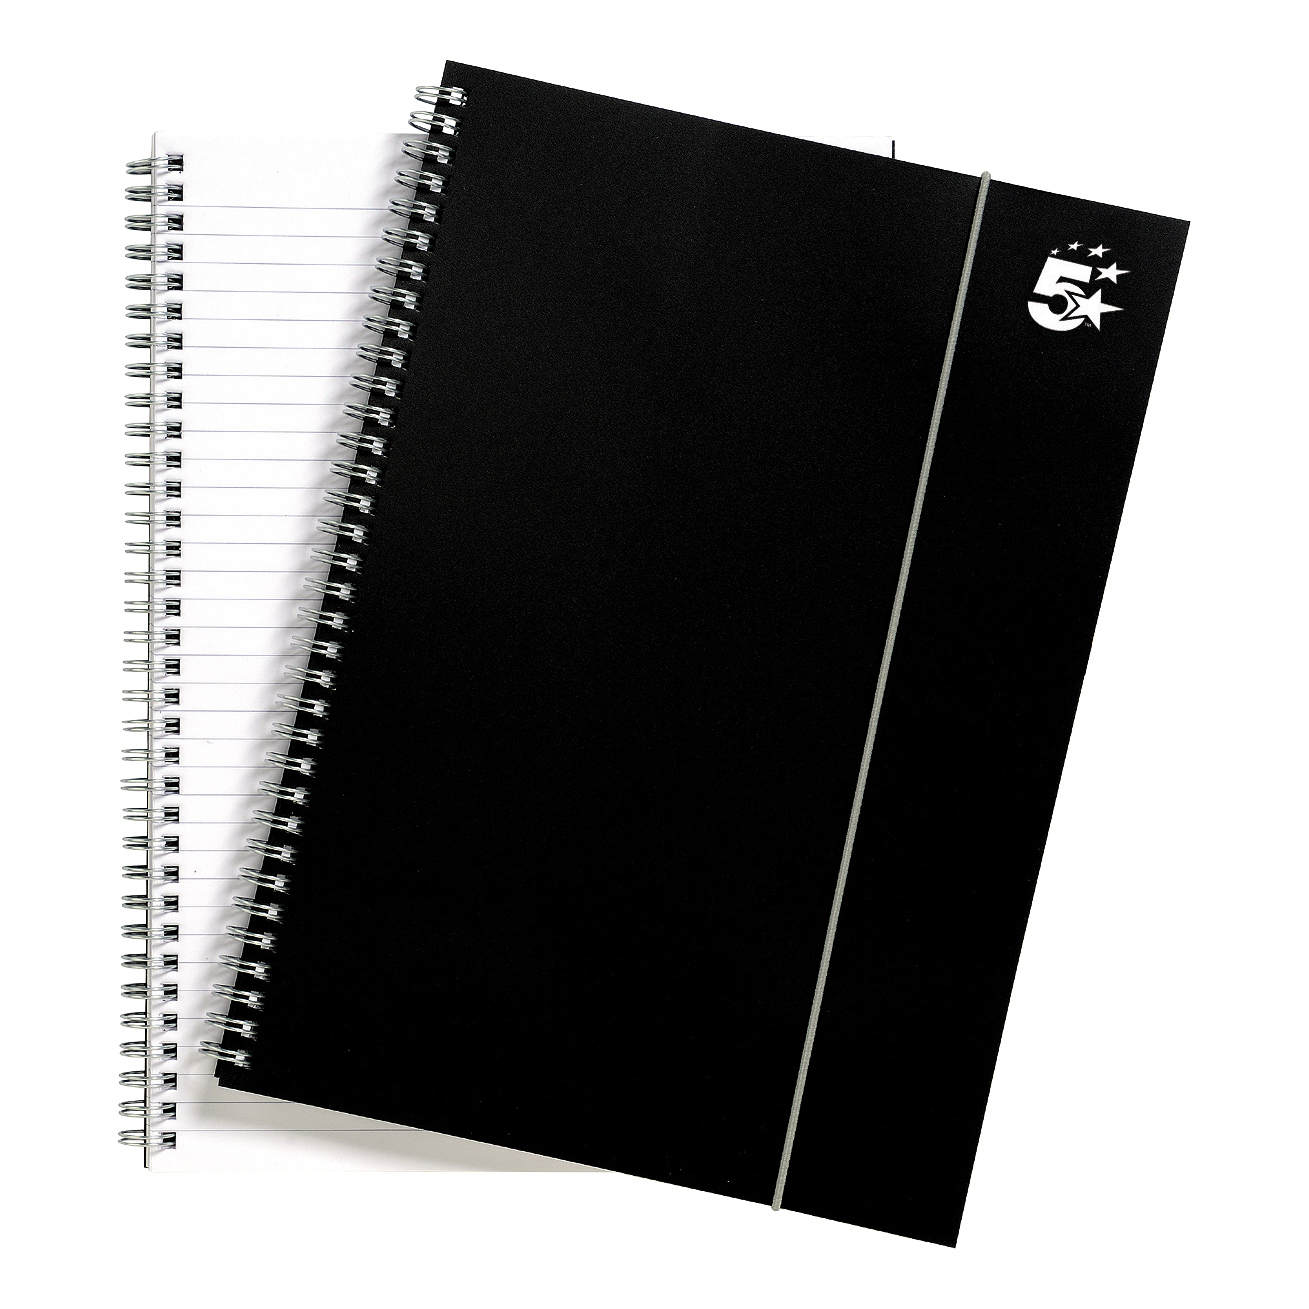 Spiral Note Books 5 Star Office Notebook Wirebound Polypropylene 80gsm Ruled 160pp A4 Black Pack 6